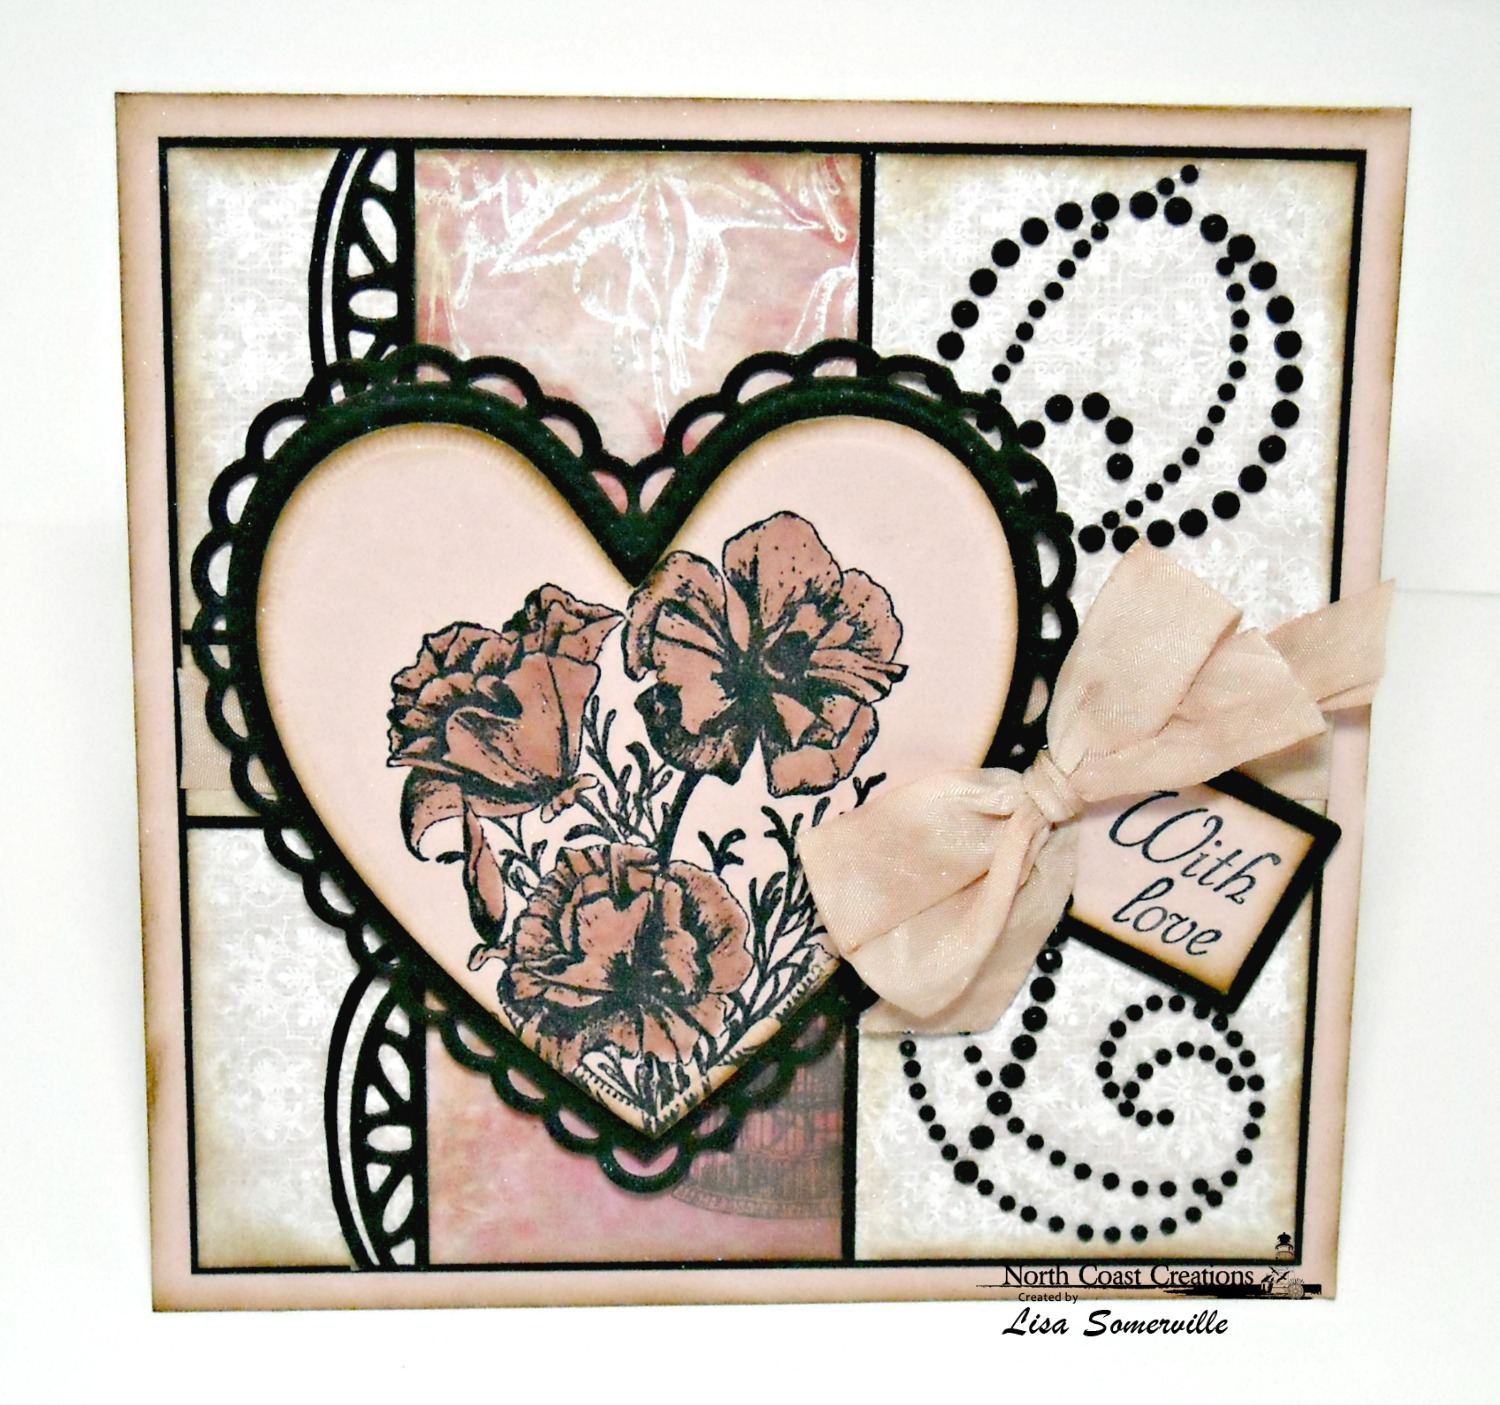 Stamps - North Coast Creations Floral Sentiments 3, ODBD Heart and Soul Paper Collection, ODBD Beautiful Borders Dies, ODBD Ornate Hearts Die, ODBD Recipe Card and Tags Dies